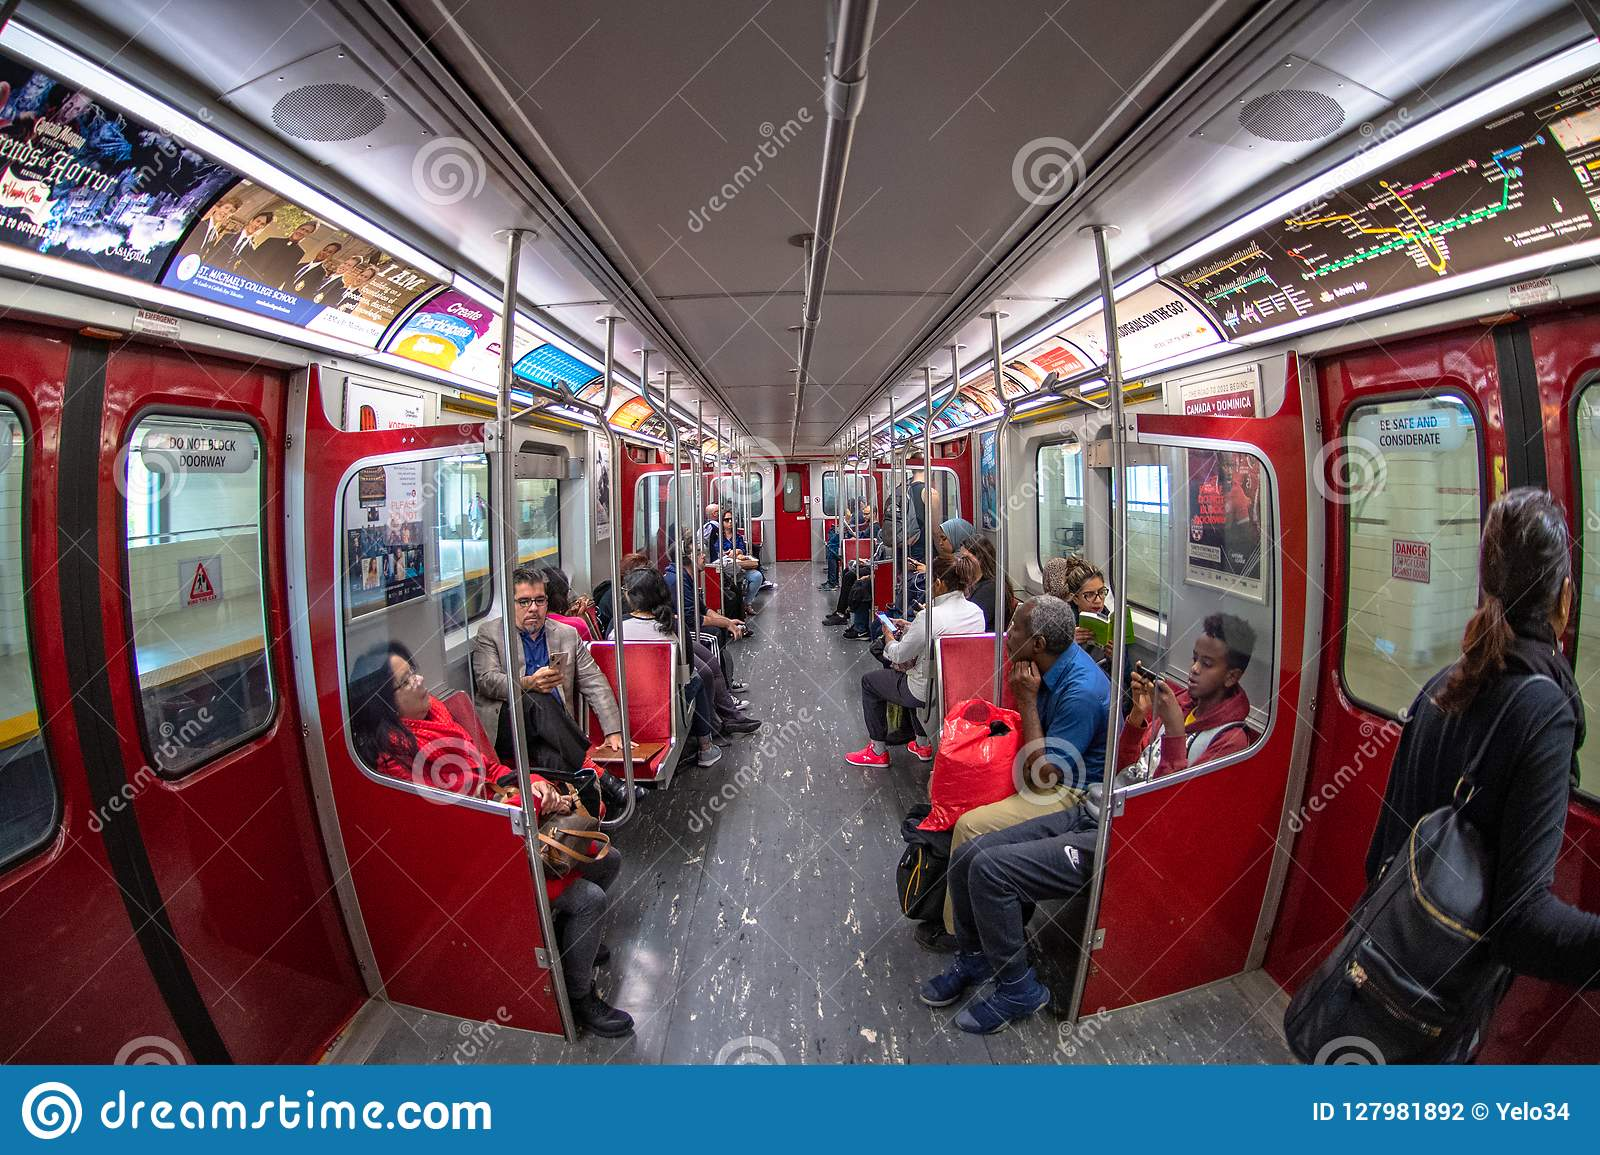 Wide angle of a TTC subway car, Toronto, Canada